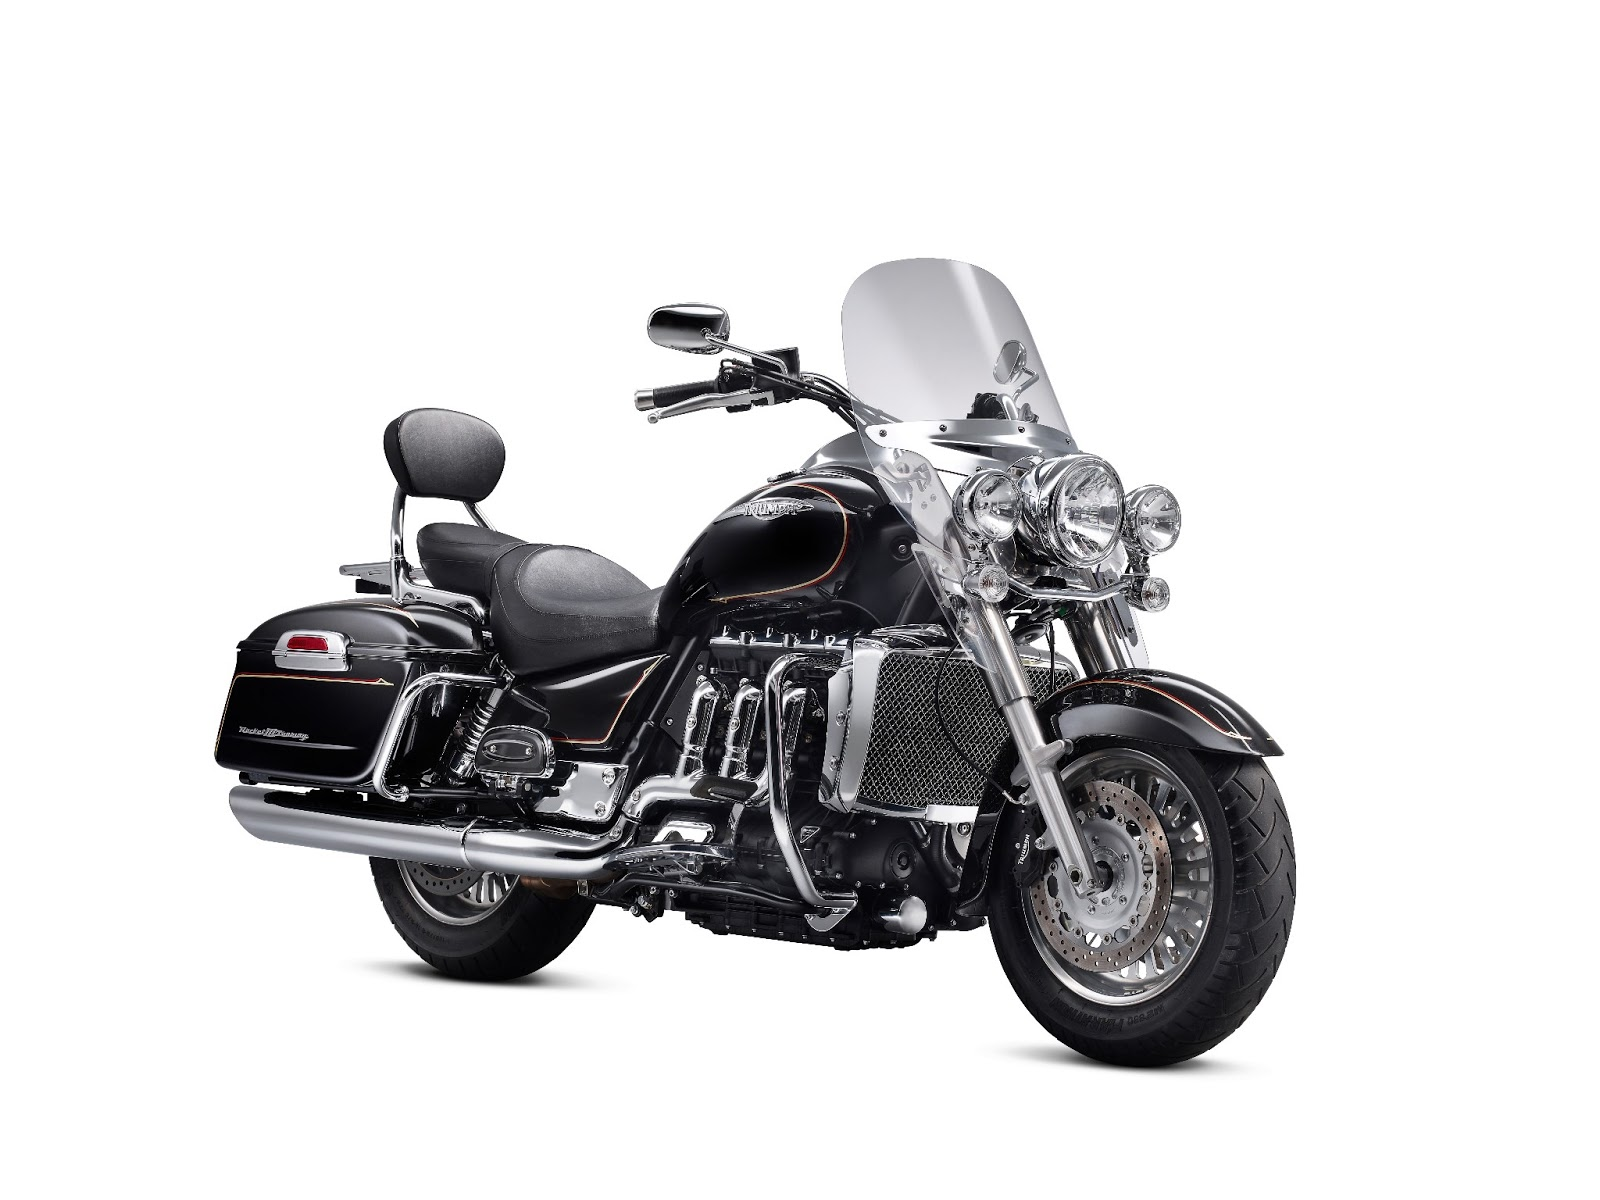 Triumph Rocket III Touring 2008 images #126133